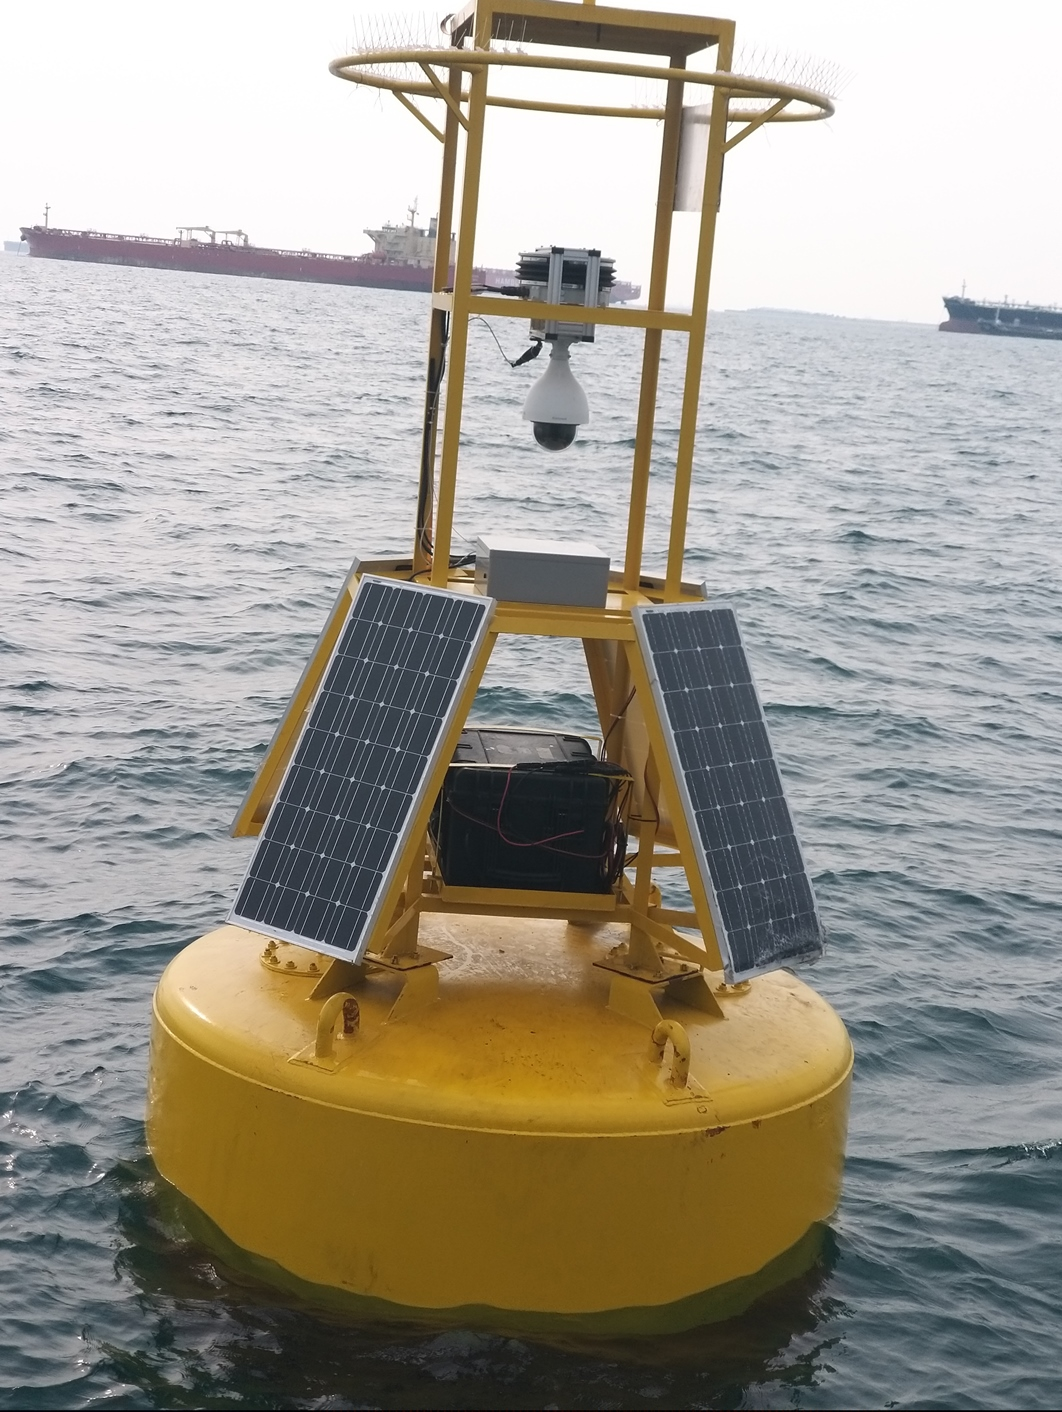 2 Gyro Stabilization Mount RSM 400 with PTZ camera mounted on buoy